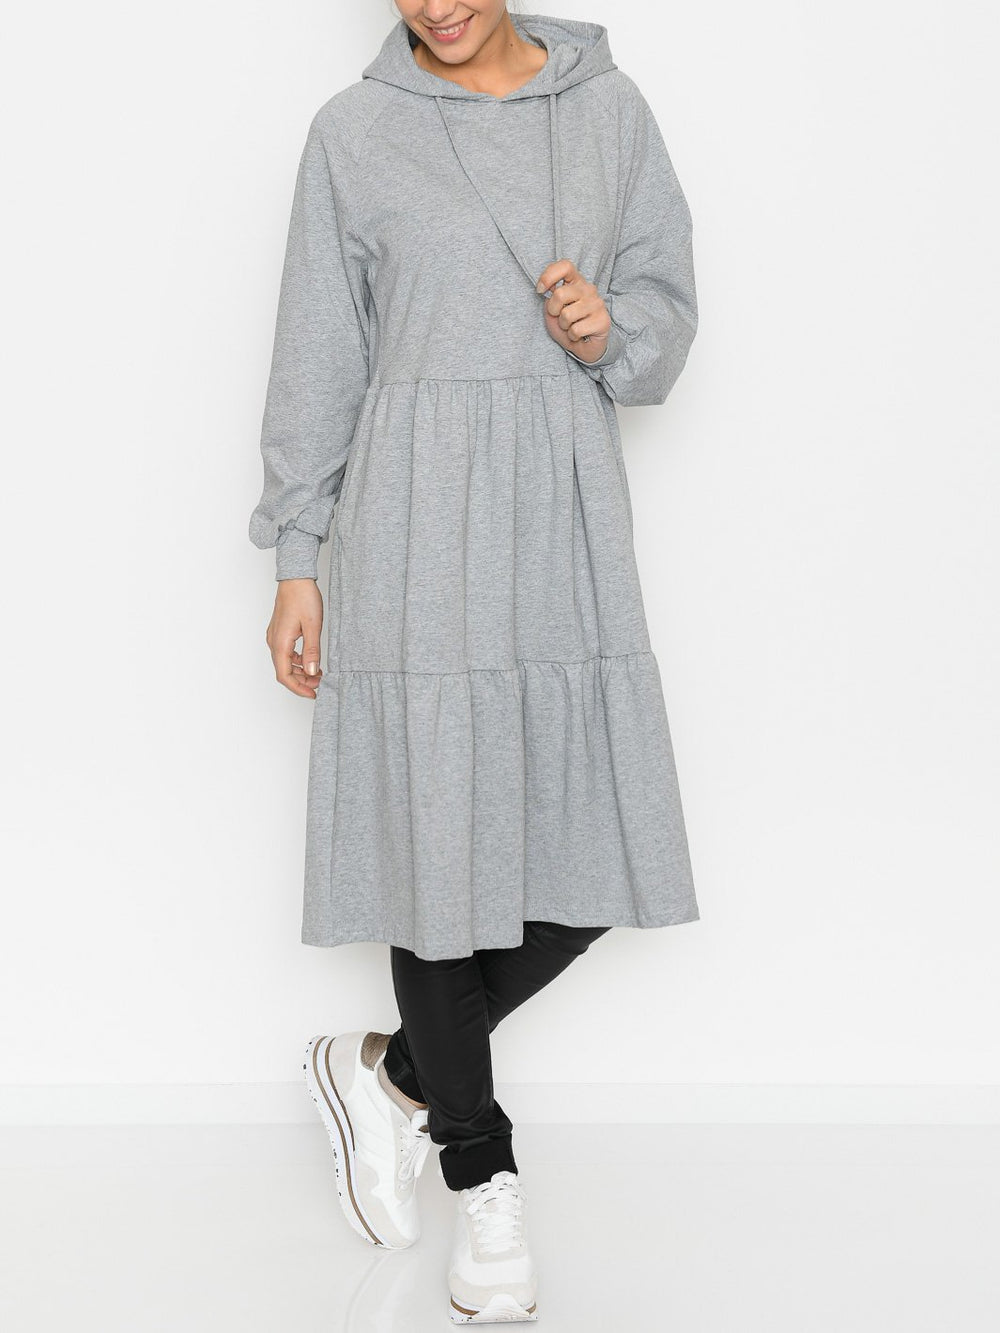 Liberté Melissa dress grey melange - Online-Mode